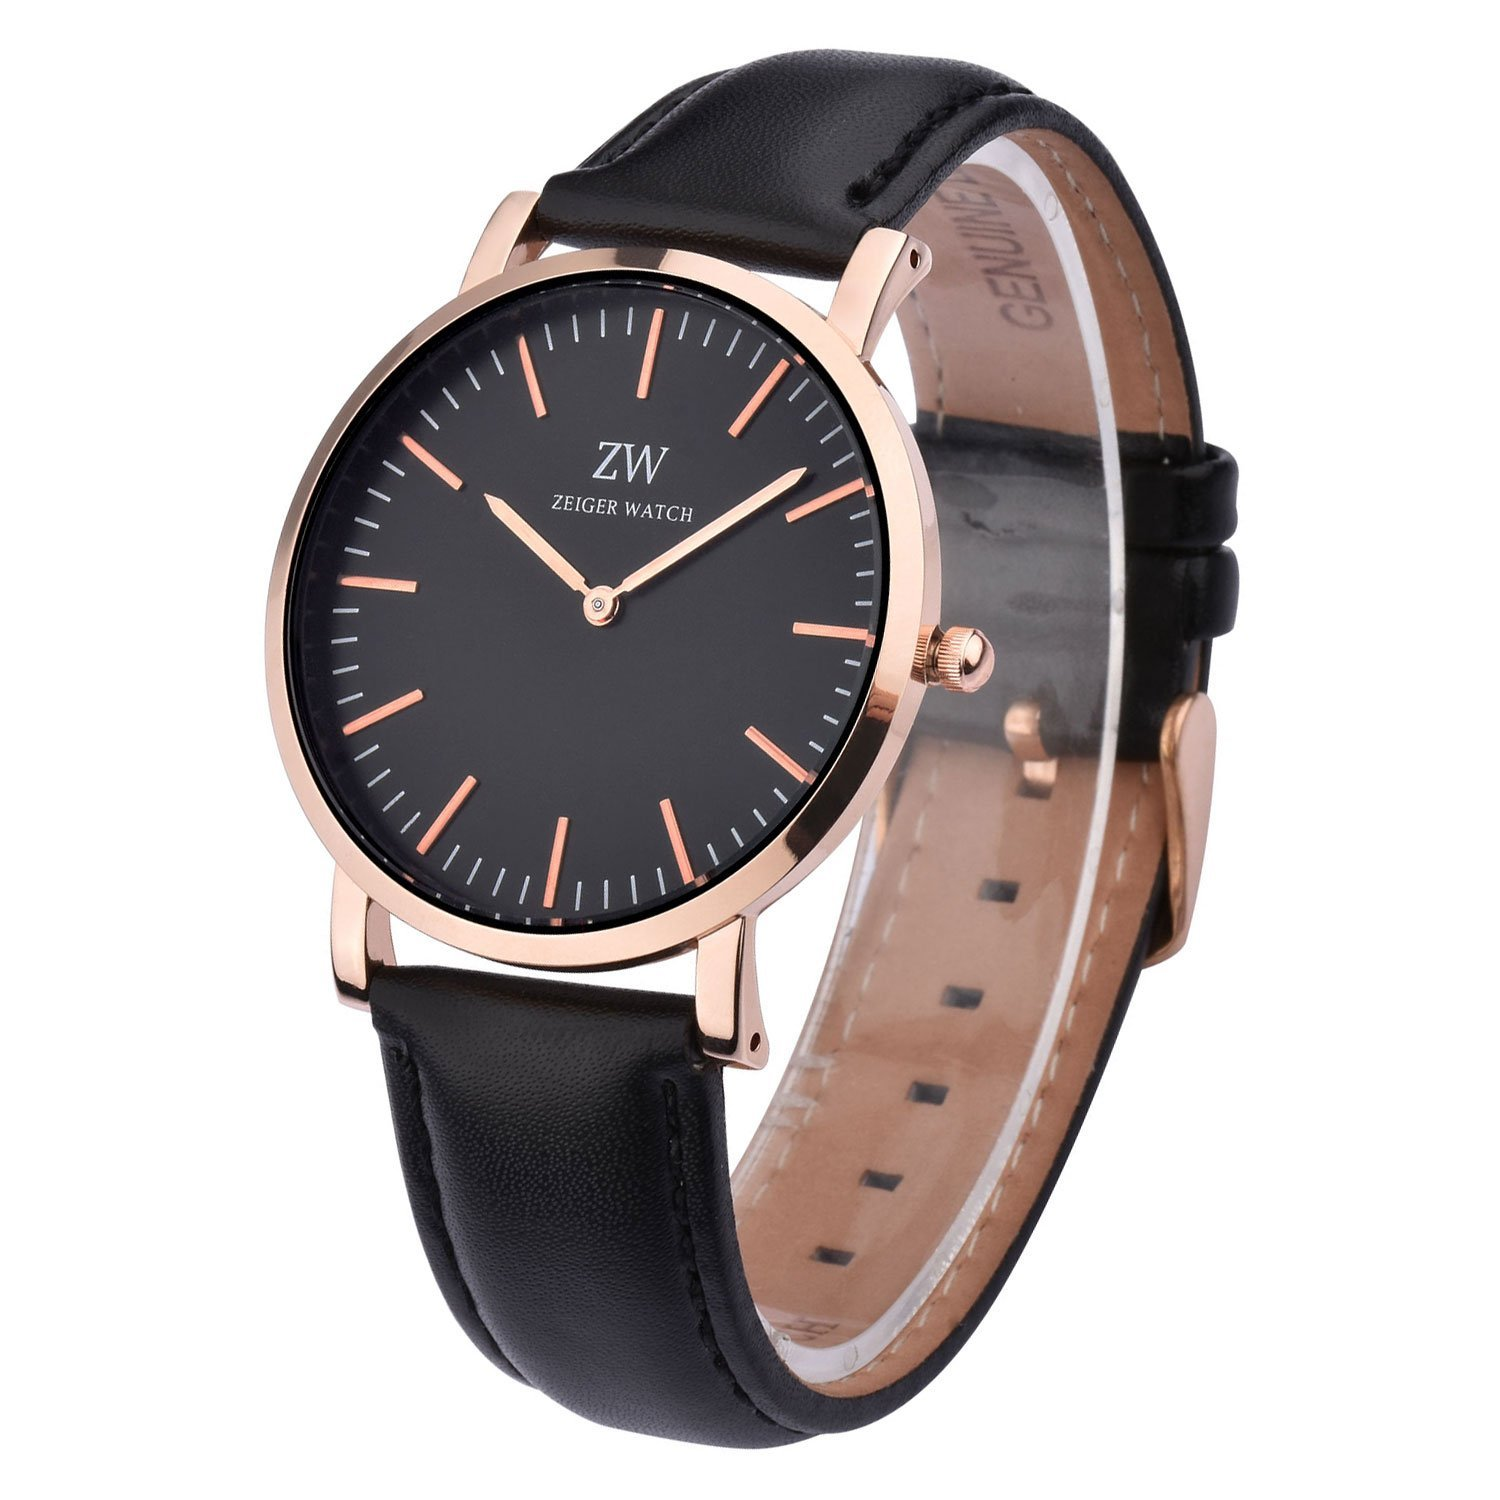 faf7c350e Zeiger New Mens Women Fashion Casual Business Black Dial Analog Quartz Watch  with Leather Band (Black and Rose Gold) - 43219-79357 < Wrist Watches ...